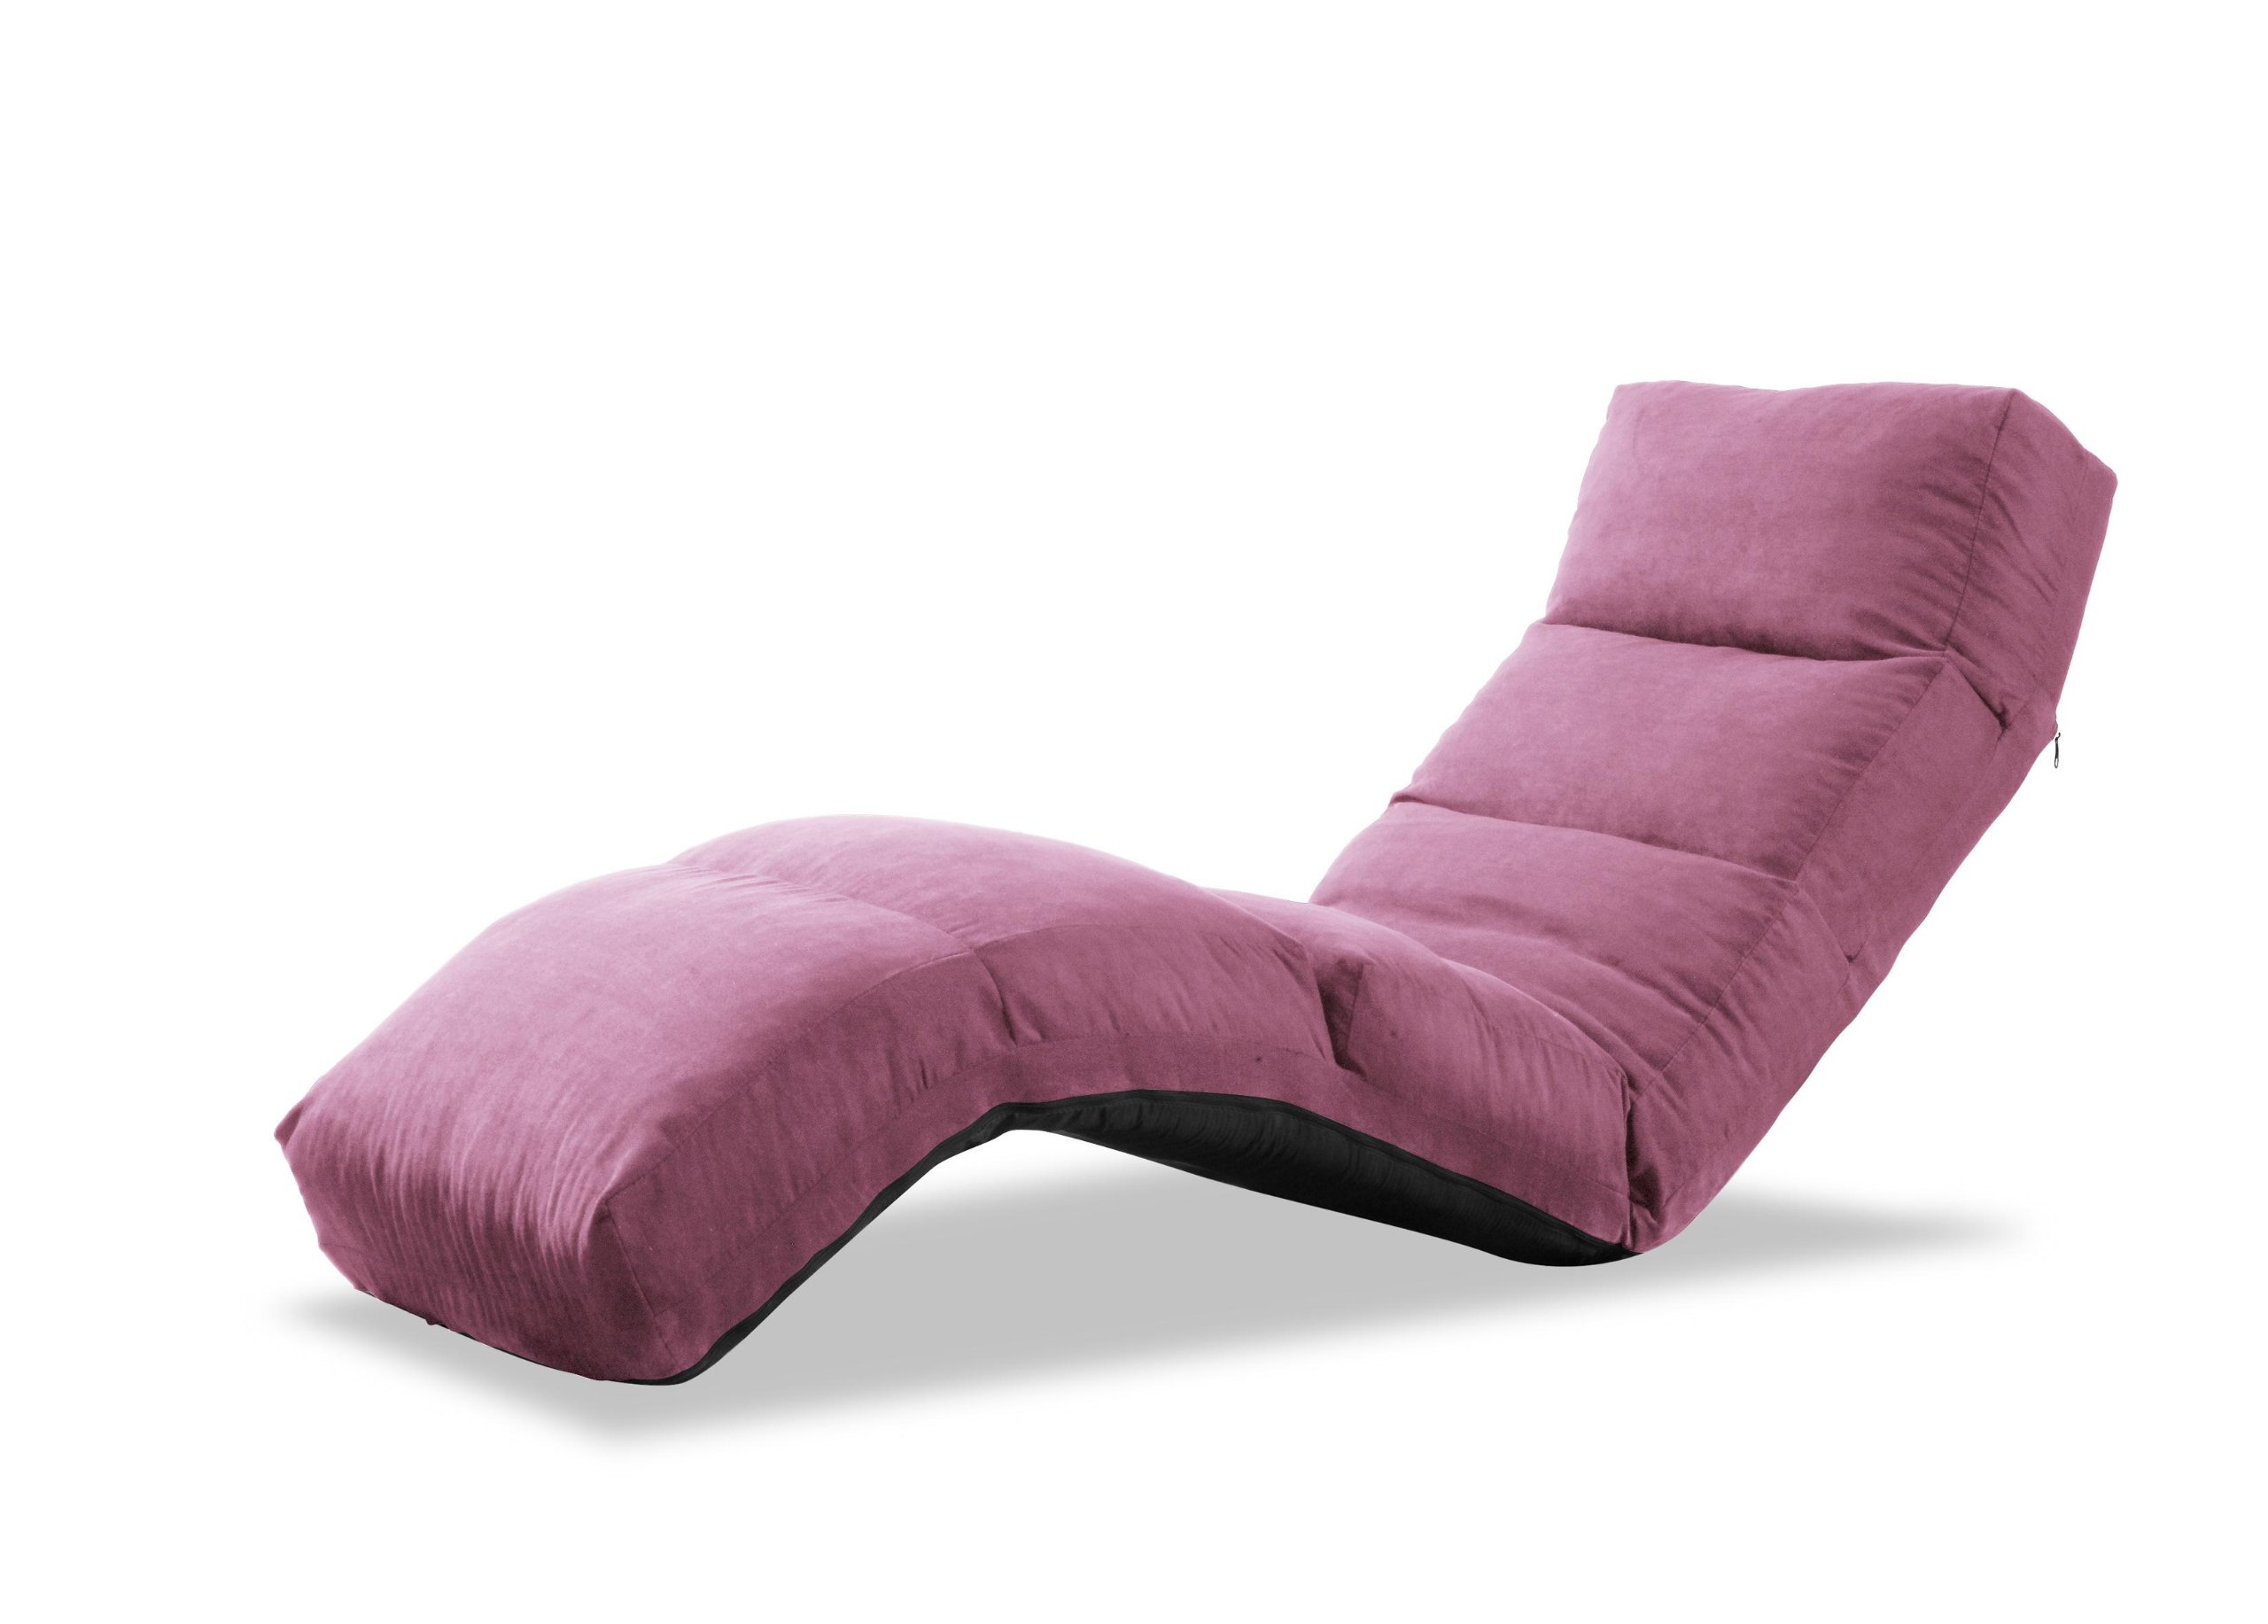 LifeStyle Solutions Jet Curved Chair Chaise Lounge Pink